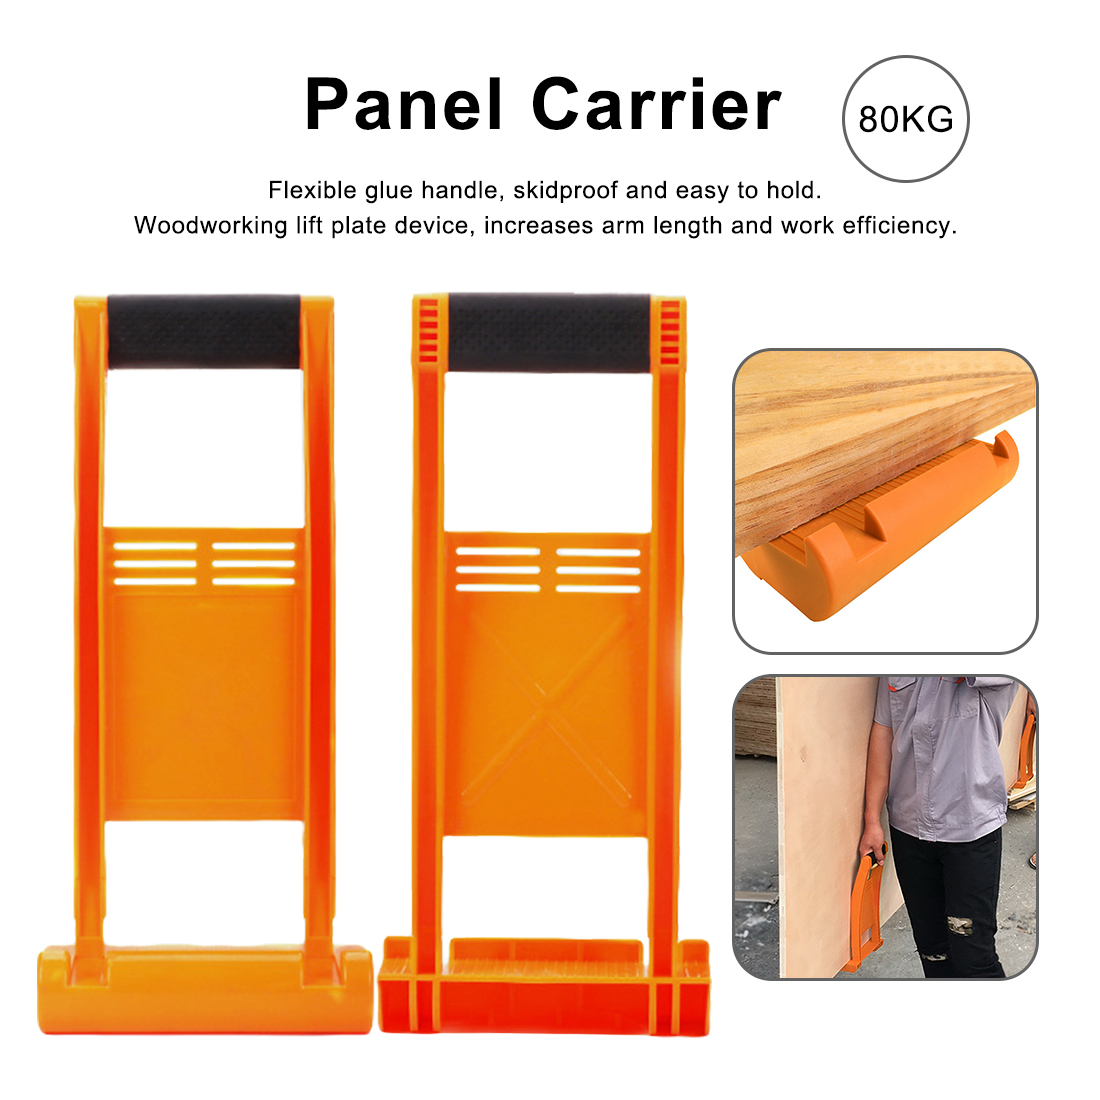 Durable ABS Load Conveyor  80KG Load Tool Panel Carrier Gripper Handle Carry Drywall Plywood Sheet tool